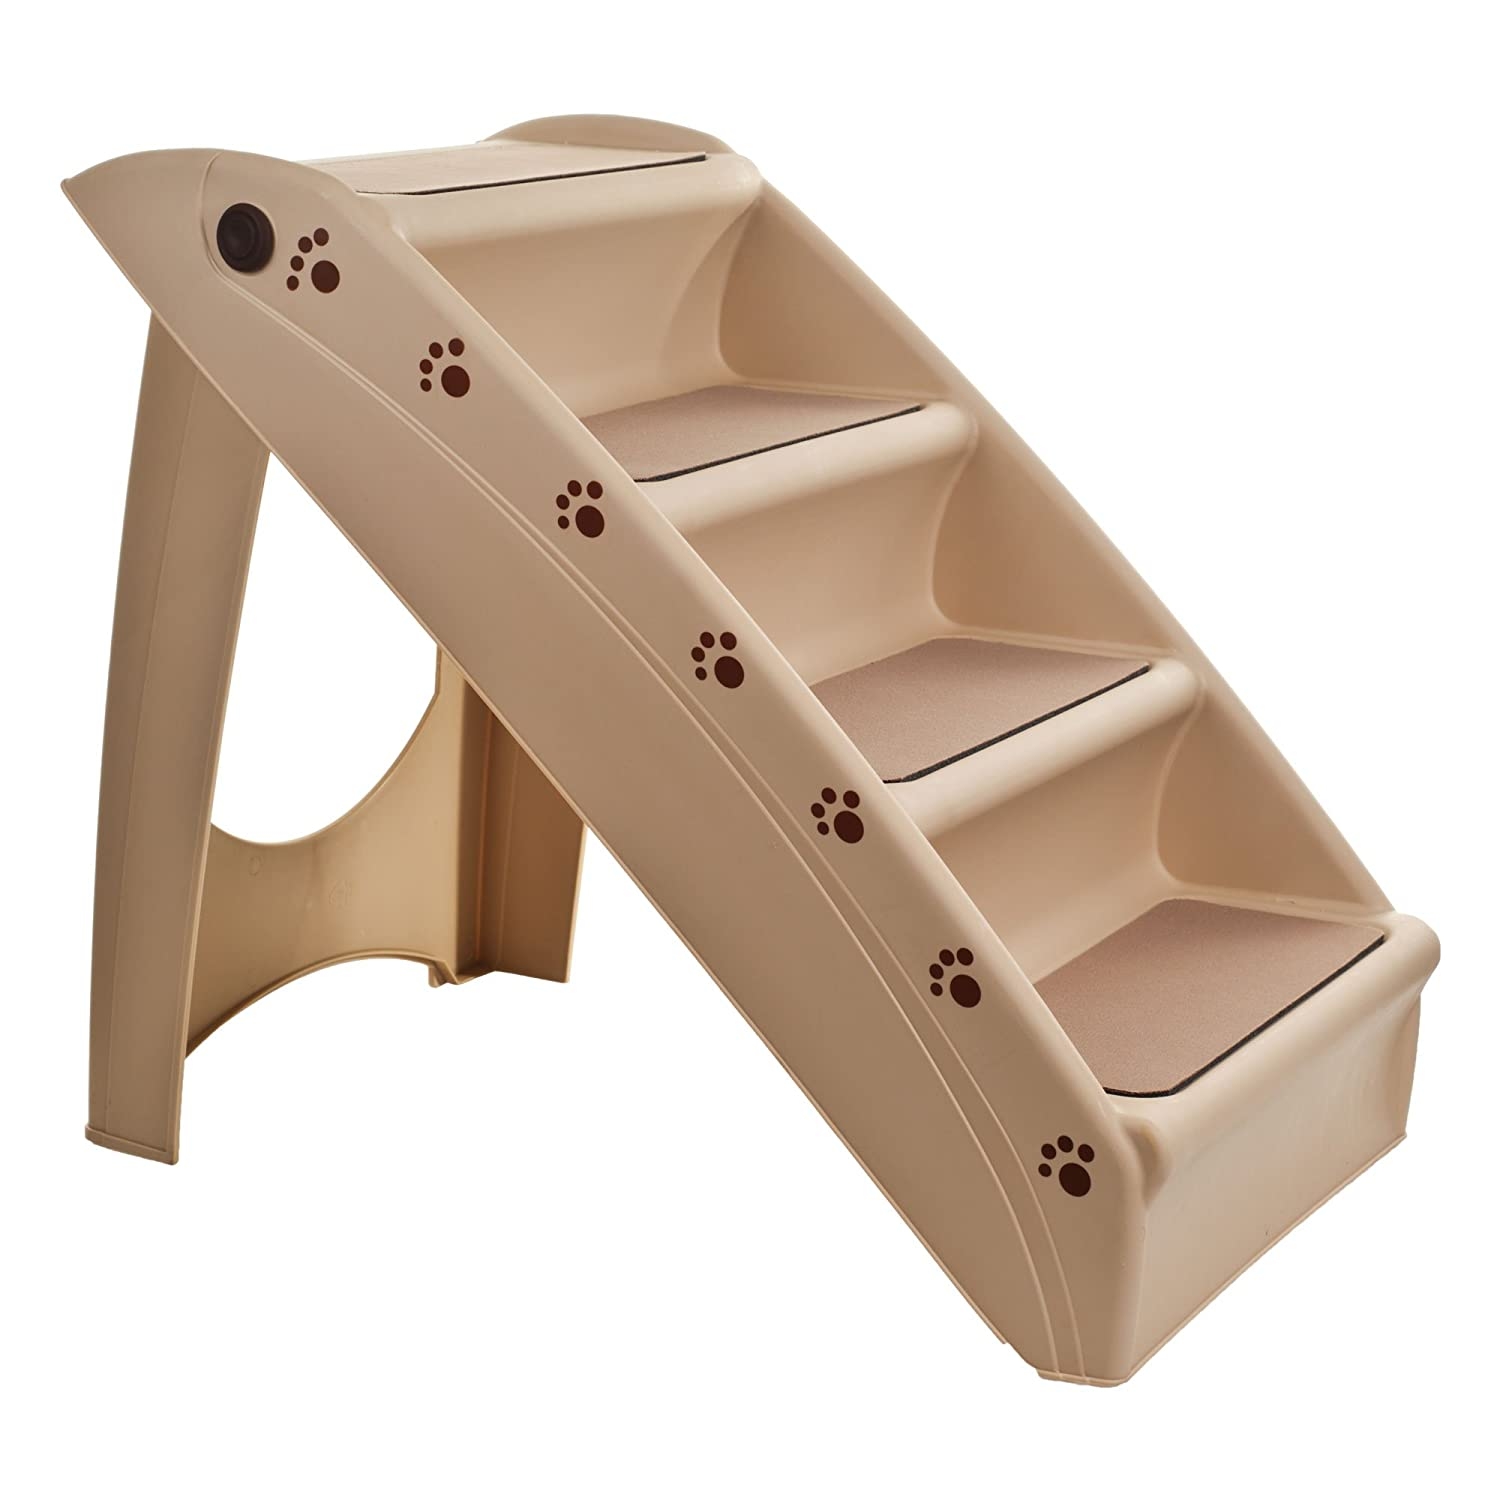 Folding Staircase Amazoncom Folding Plastic Pet Stairs Durable Indoor Or Outdoor